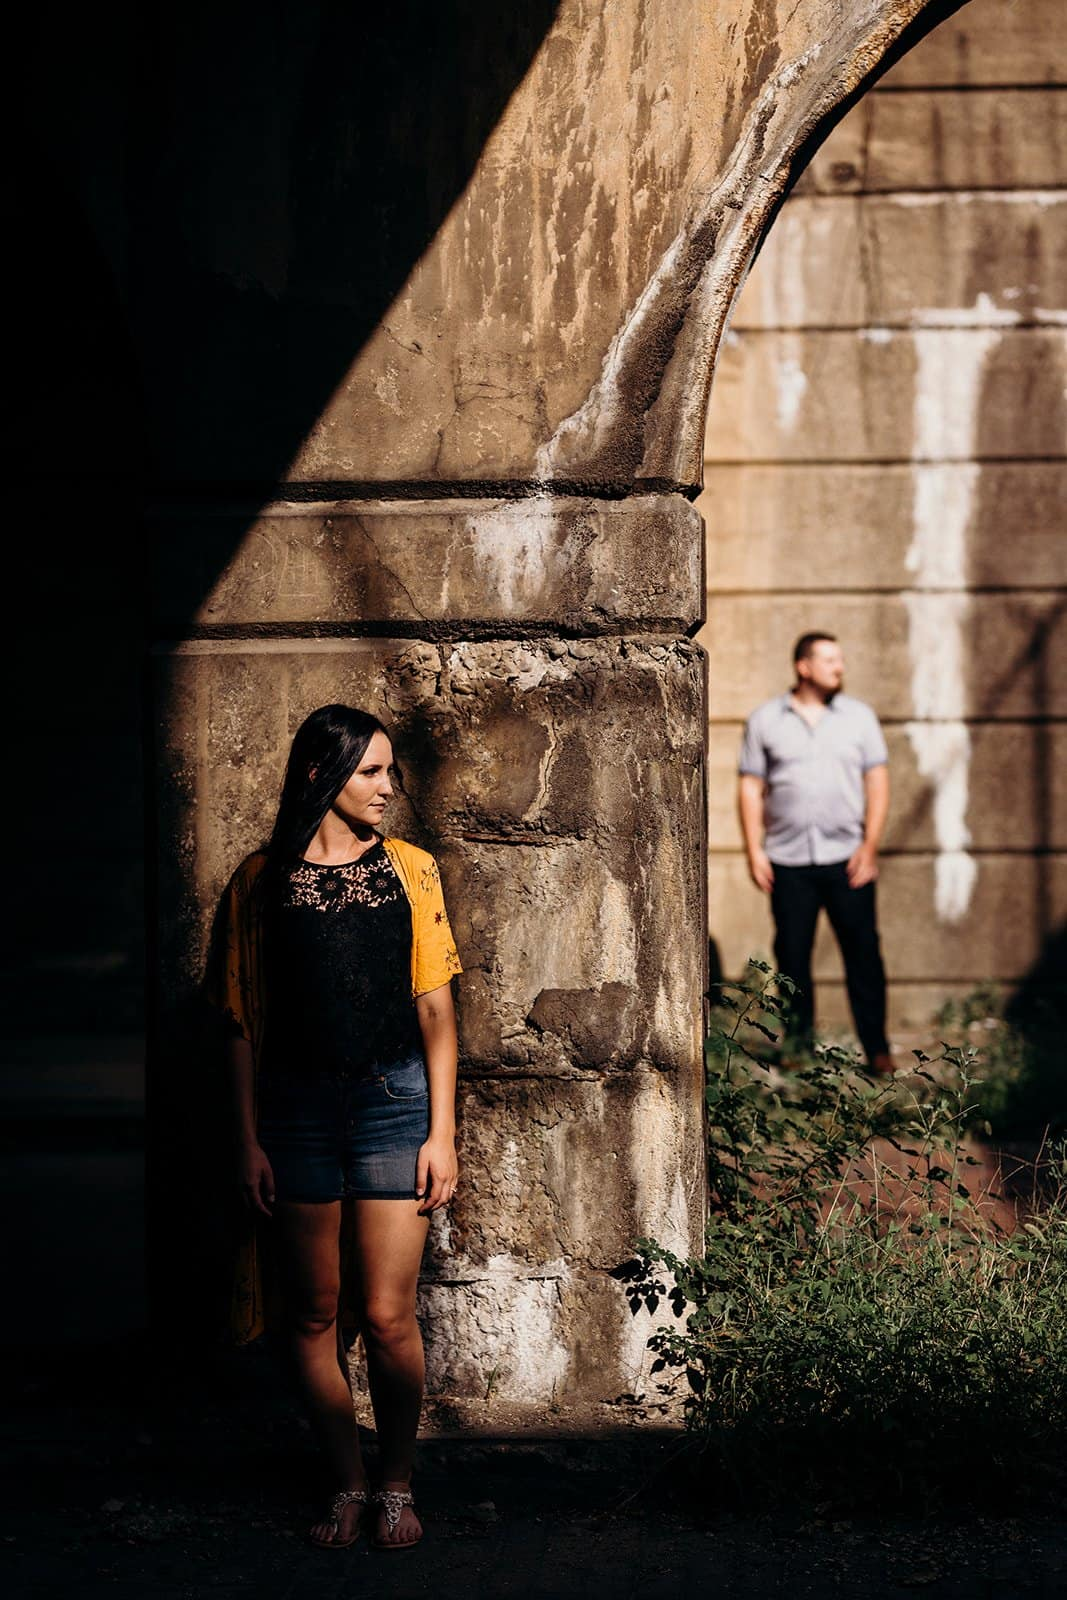 Couple standing in shadows at underpass in Pittsburgh